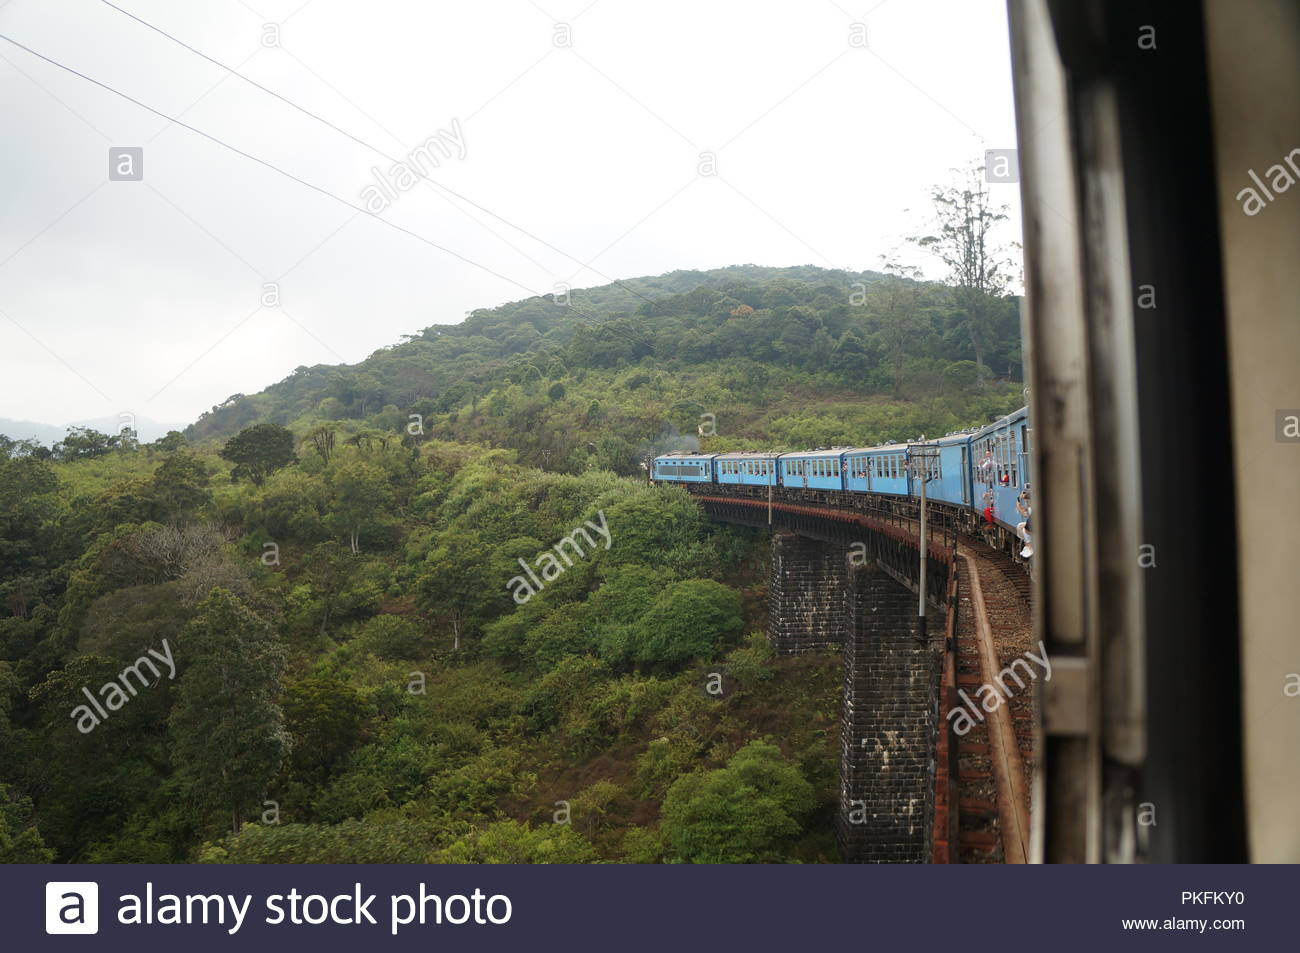 On the way between kandy and ella in Sri Lanka. Travel by train is recommended here! - Stock Image